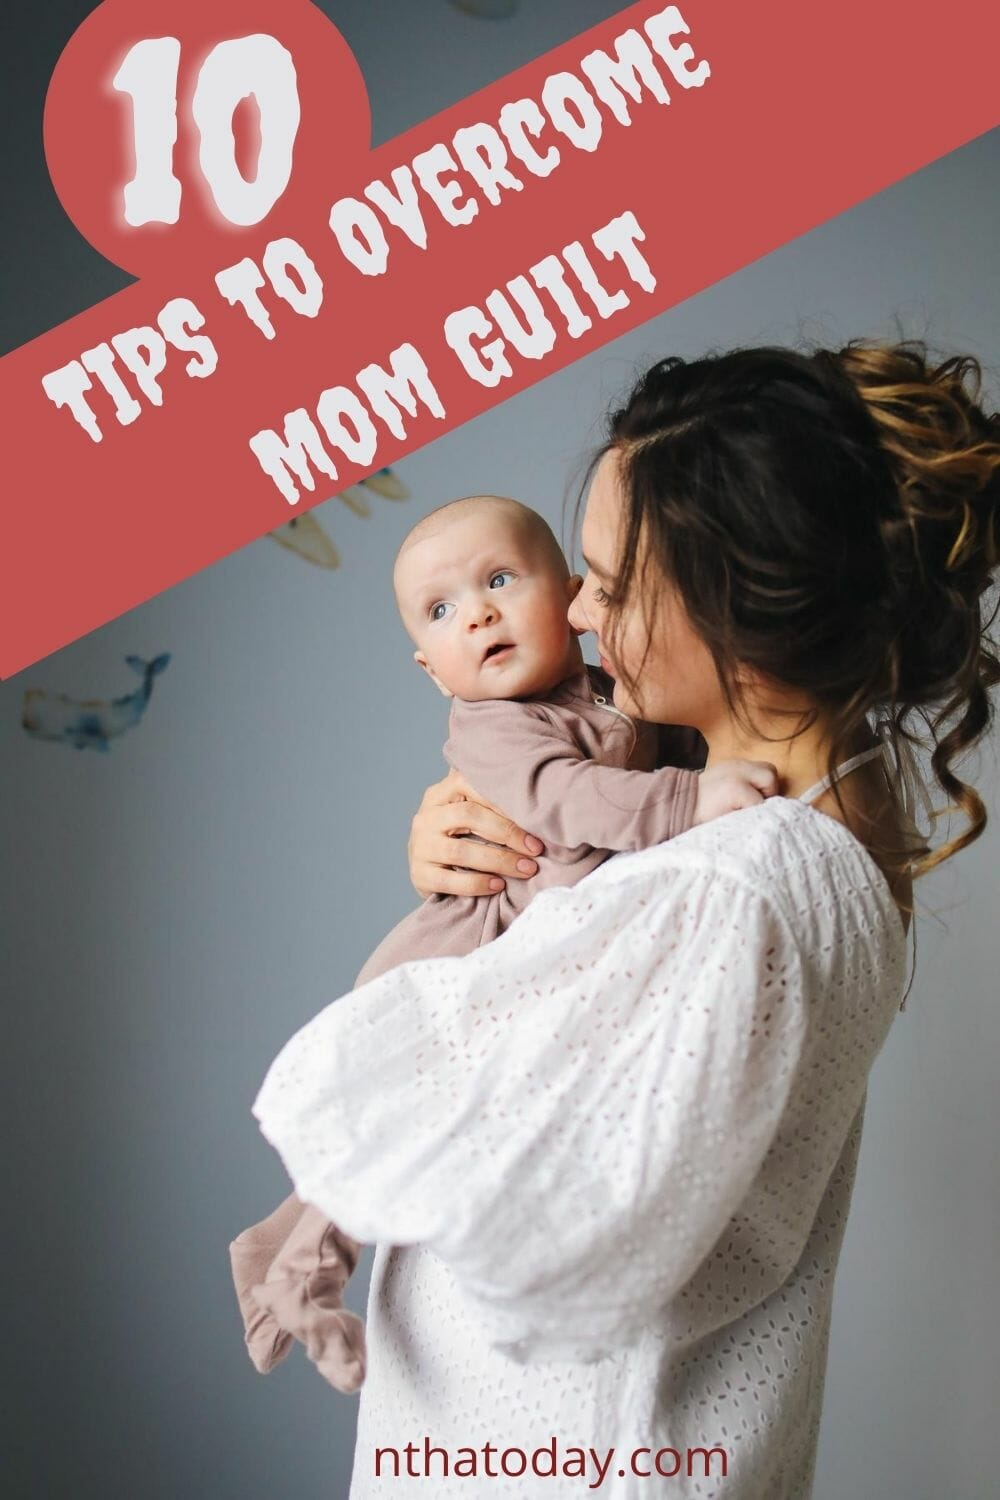 Overcome mom guilt